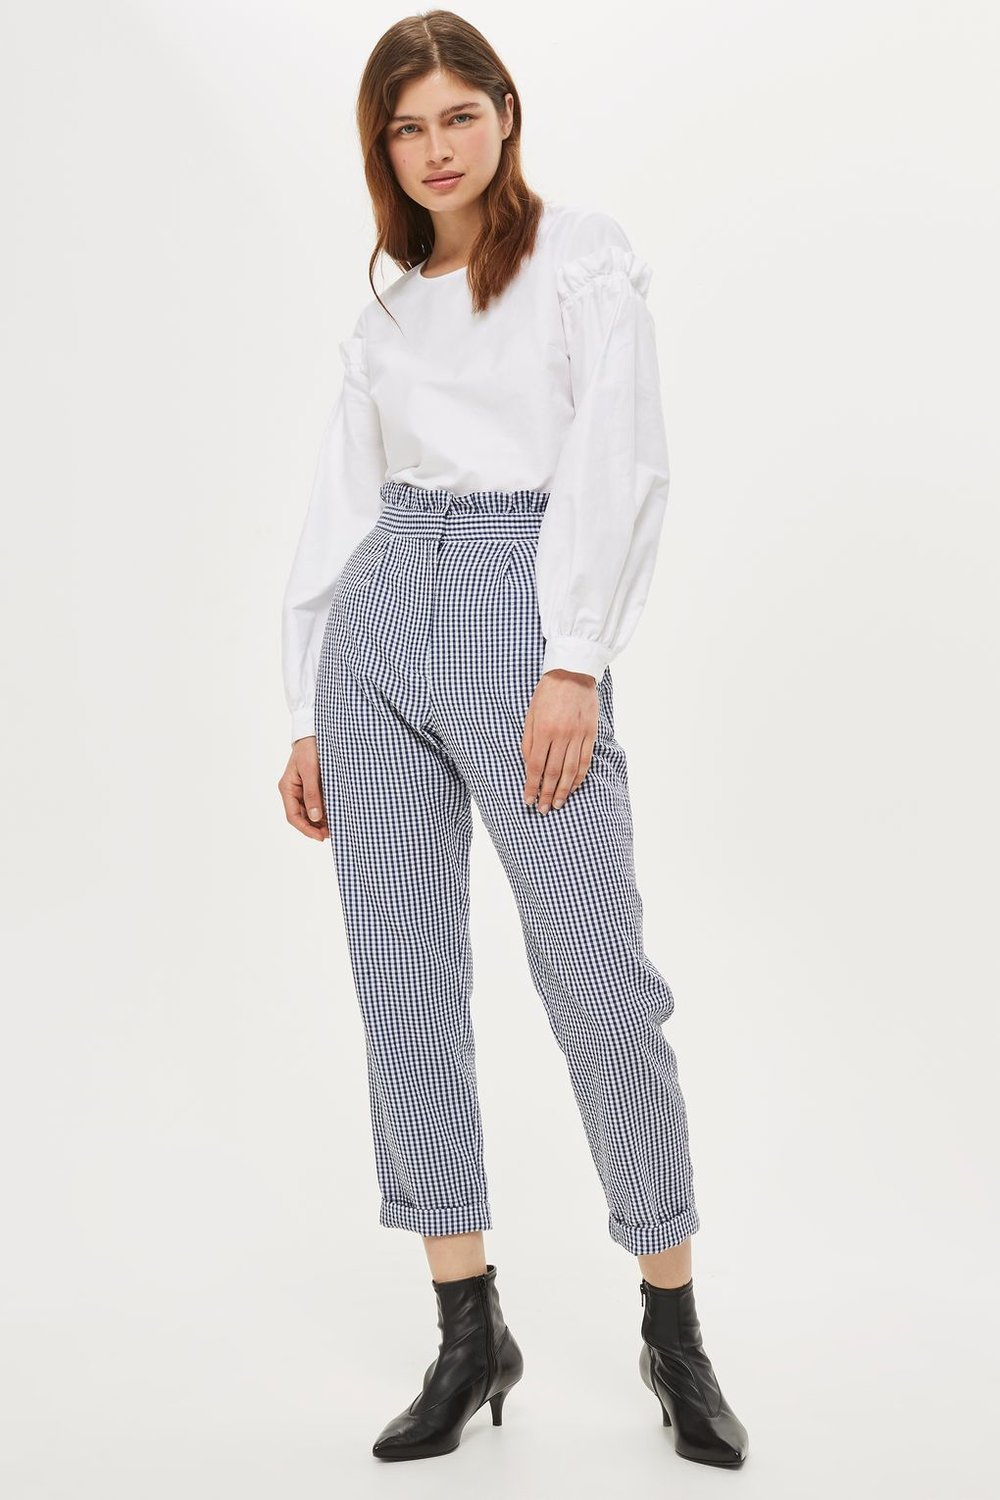 GINGHAM  Ruffle Waist Gingham Trousers from Topshop £36.00